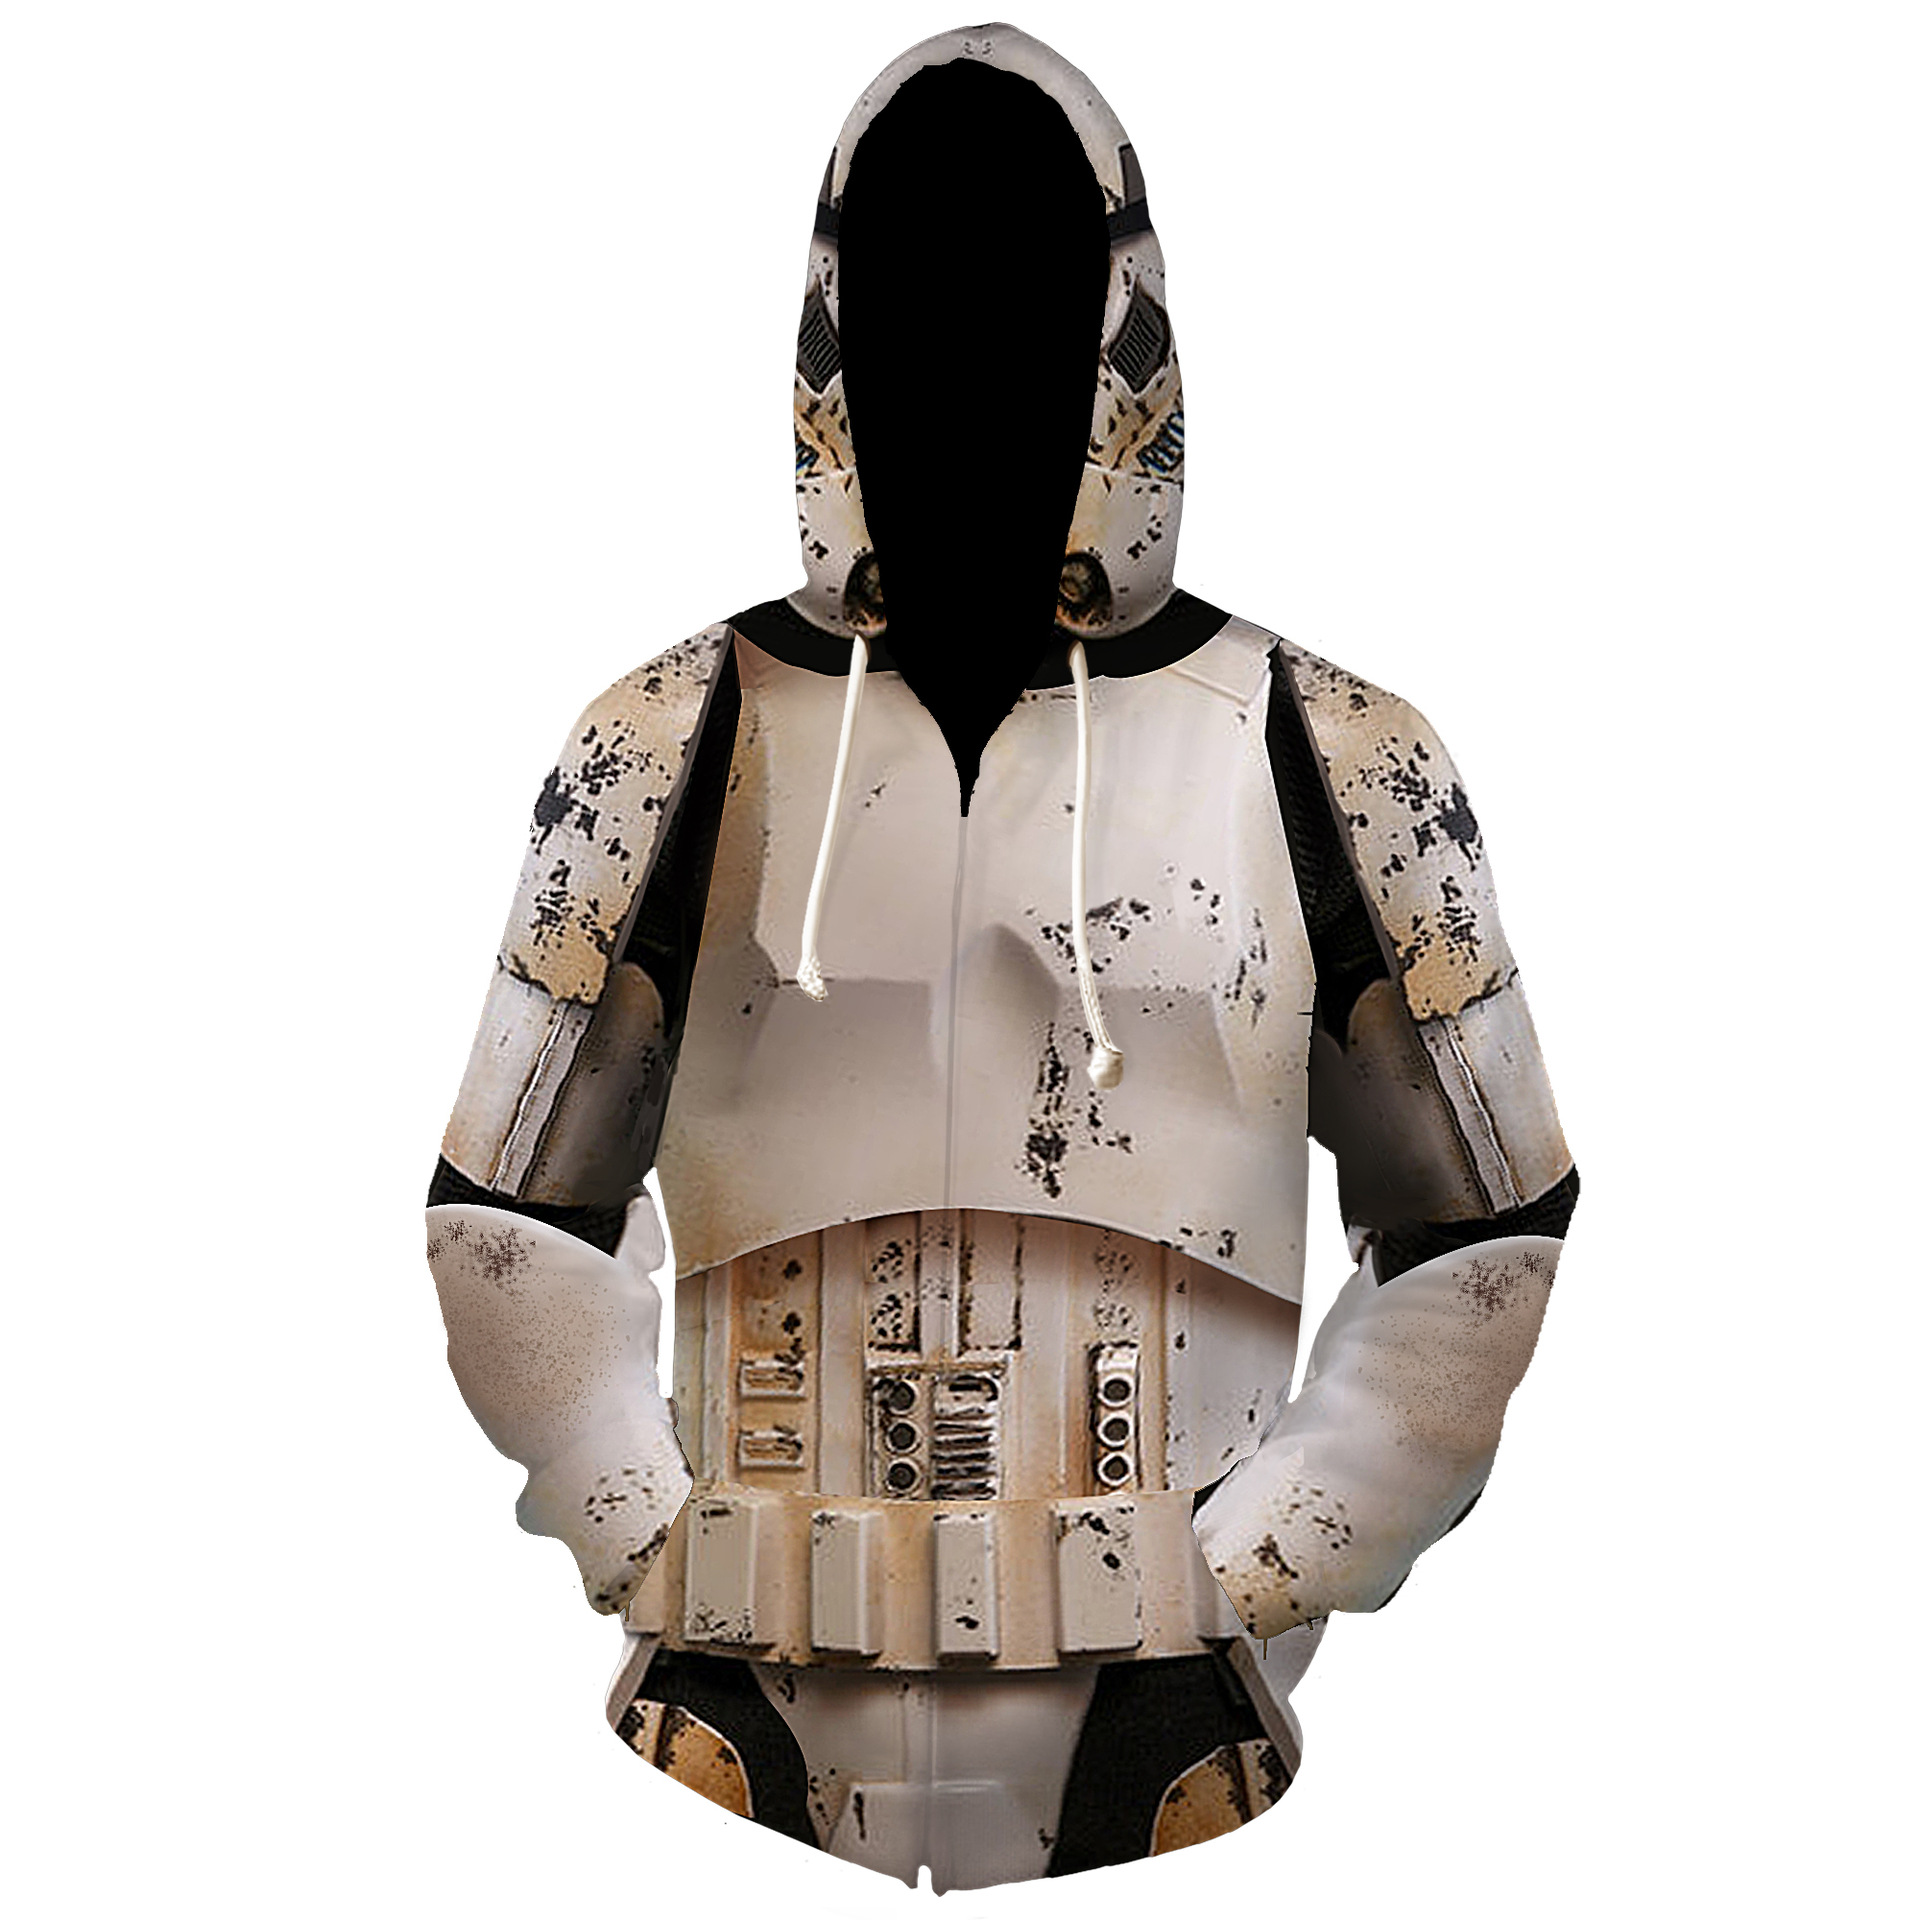 Movie Star Wars: The Rise Of Skywalker Jedi Knight Hoodies Jackets Cosplay Costumes Mandalorian 3D Printing Hoodie Sweatshirts